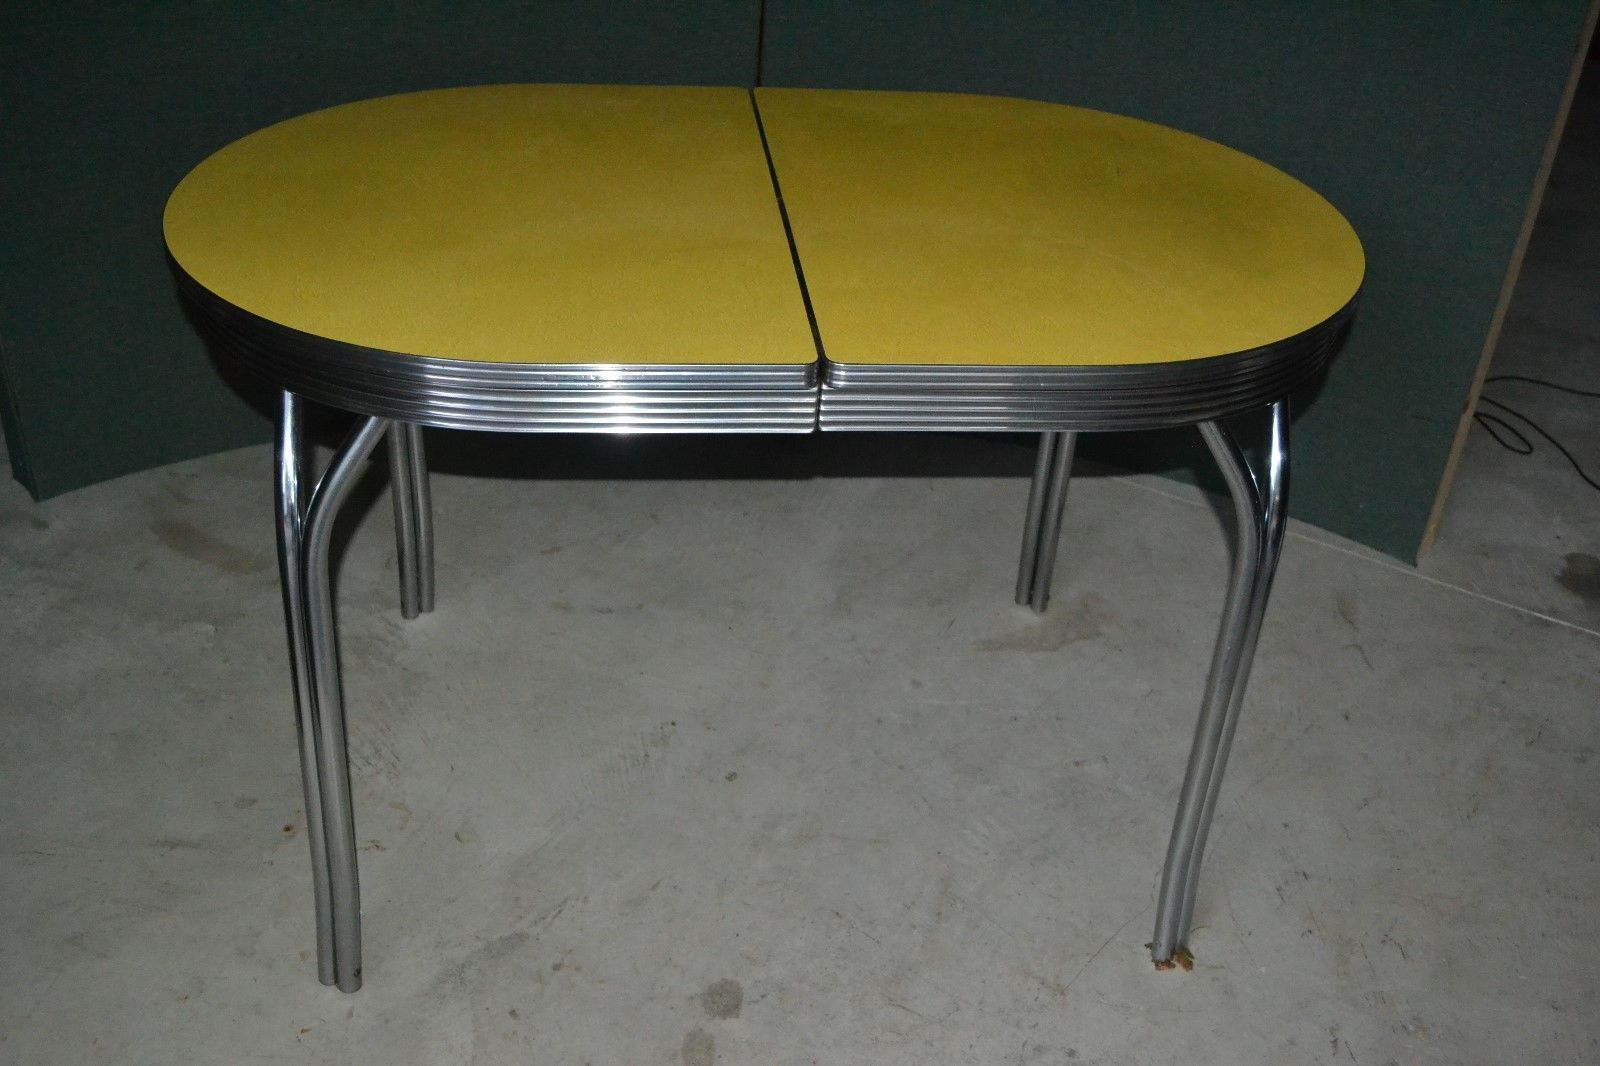 Formica Chrome Kitchen Table Vintage Mid Century Modern Retro